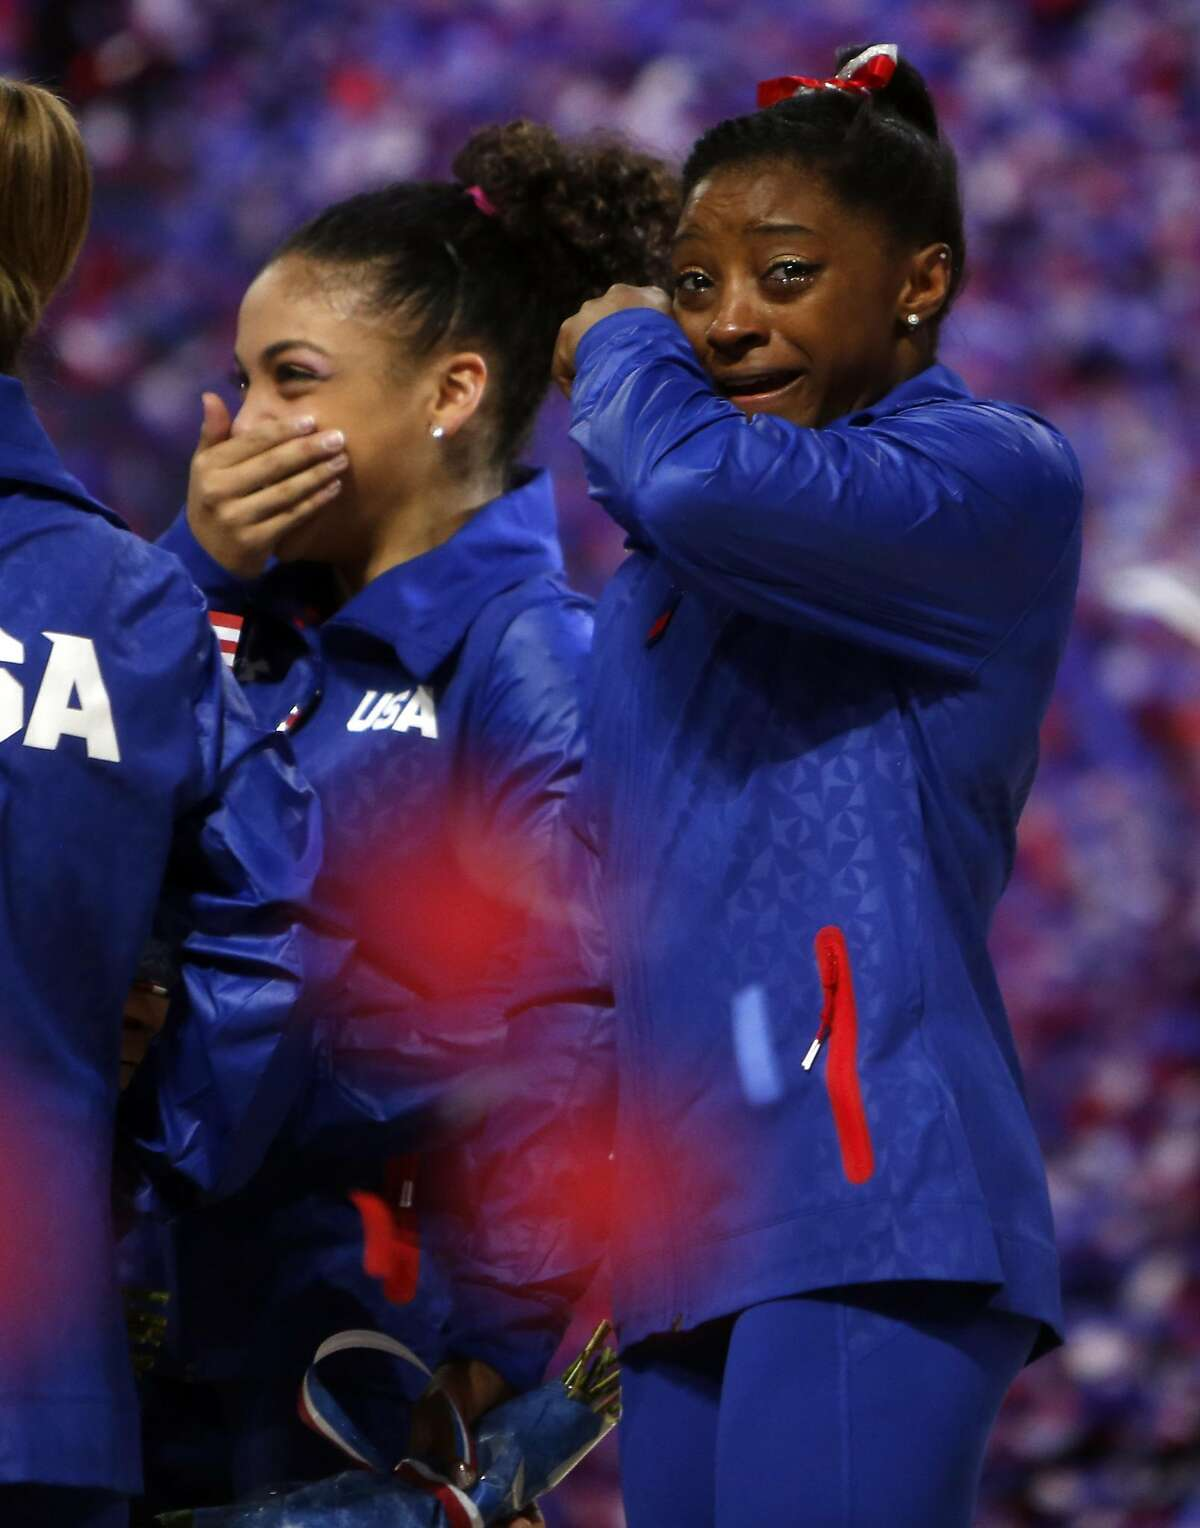 Simone Biles and Laurie Hernandez are overcome with emotion after making the 2016 U.S Olympic team on Day 2 of 2016 U.S. Olympic Trials for Women's Gymnastics at SAP Center in San Jose, Calif., on Sunday, July 10, 2016.